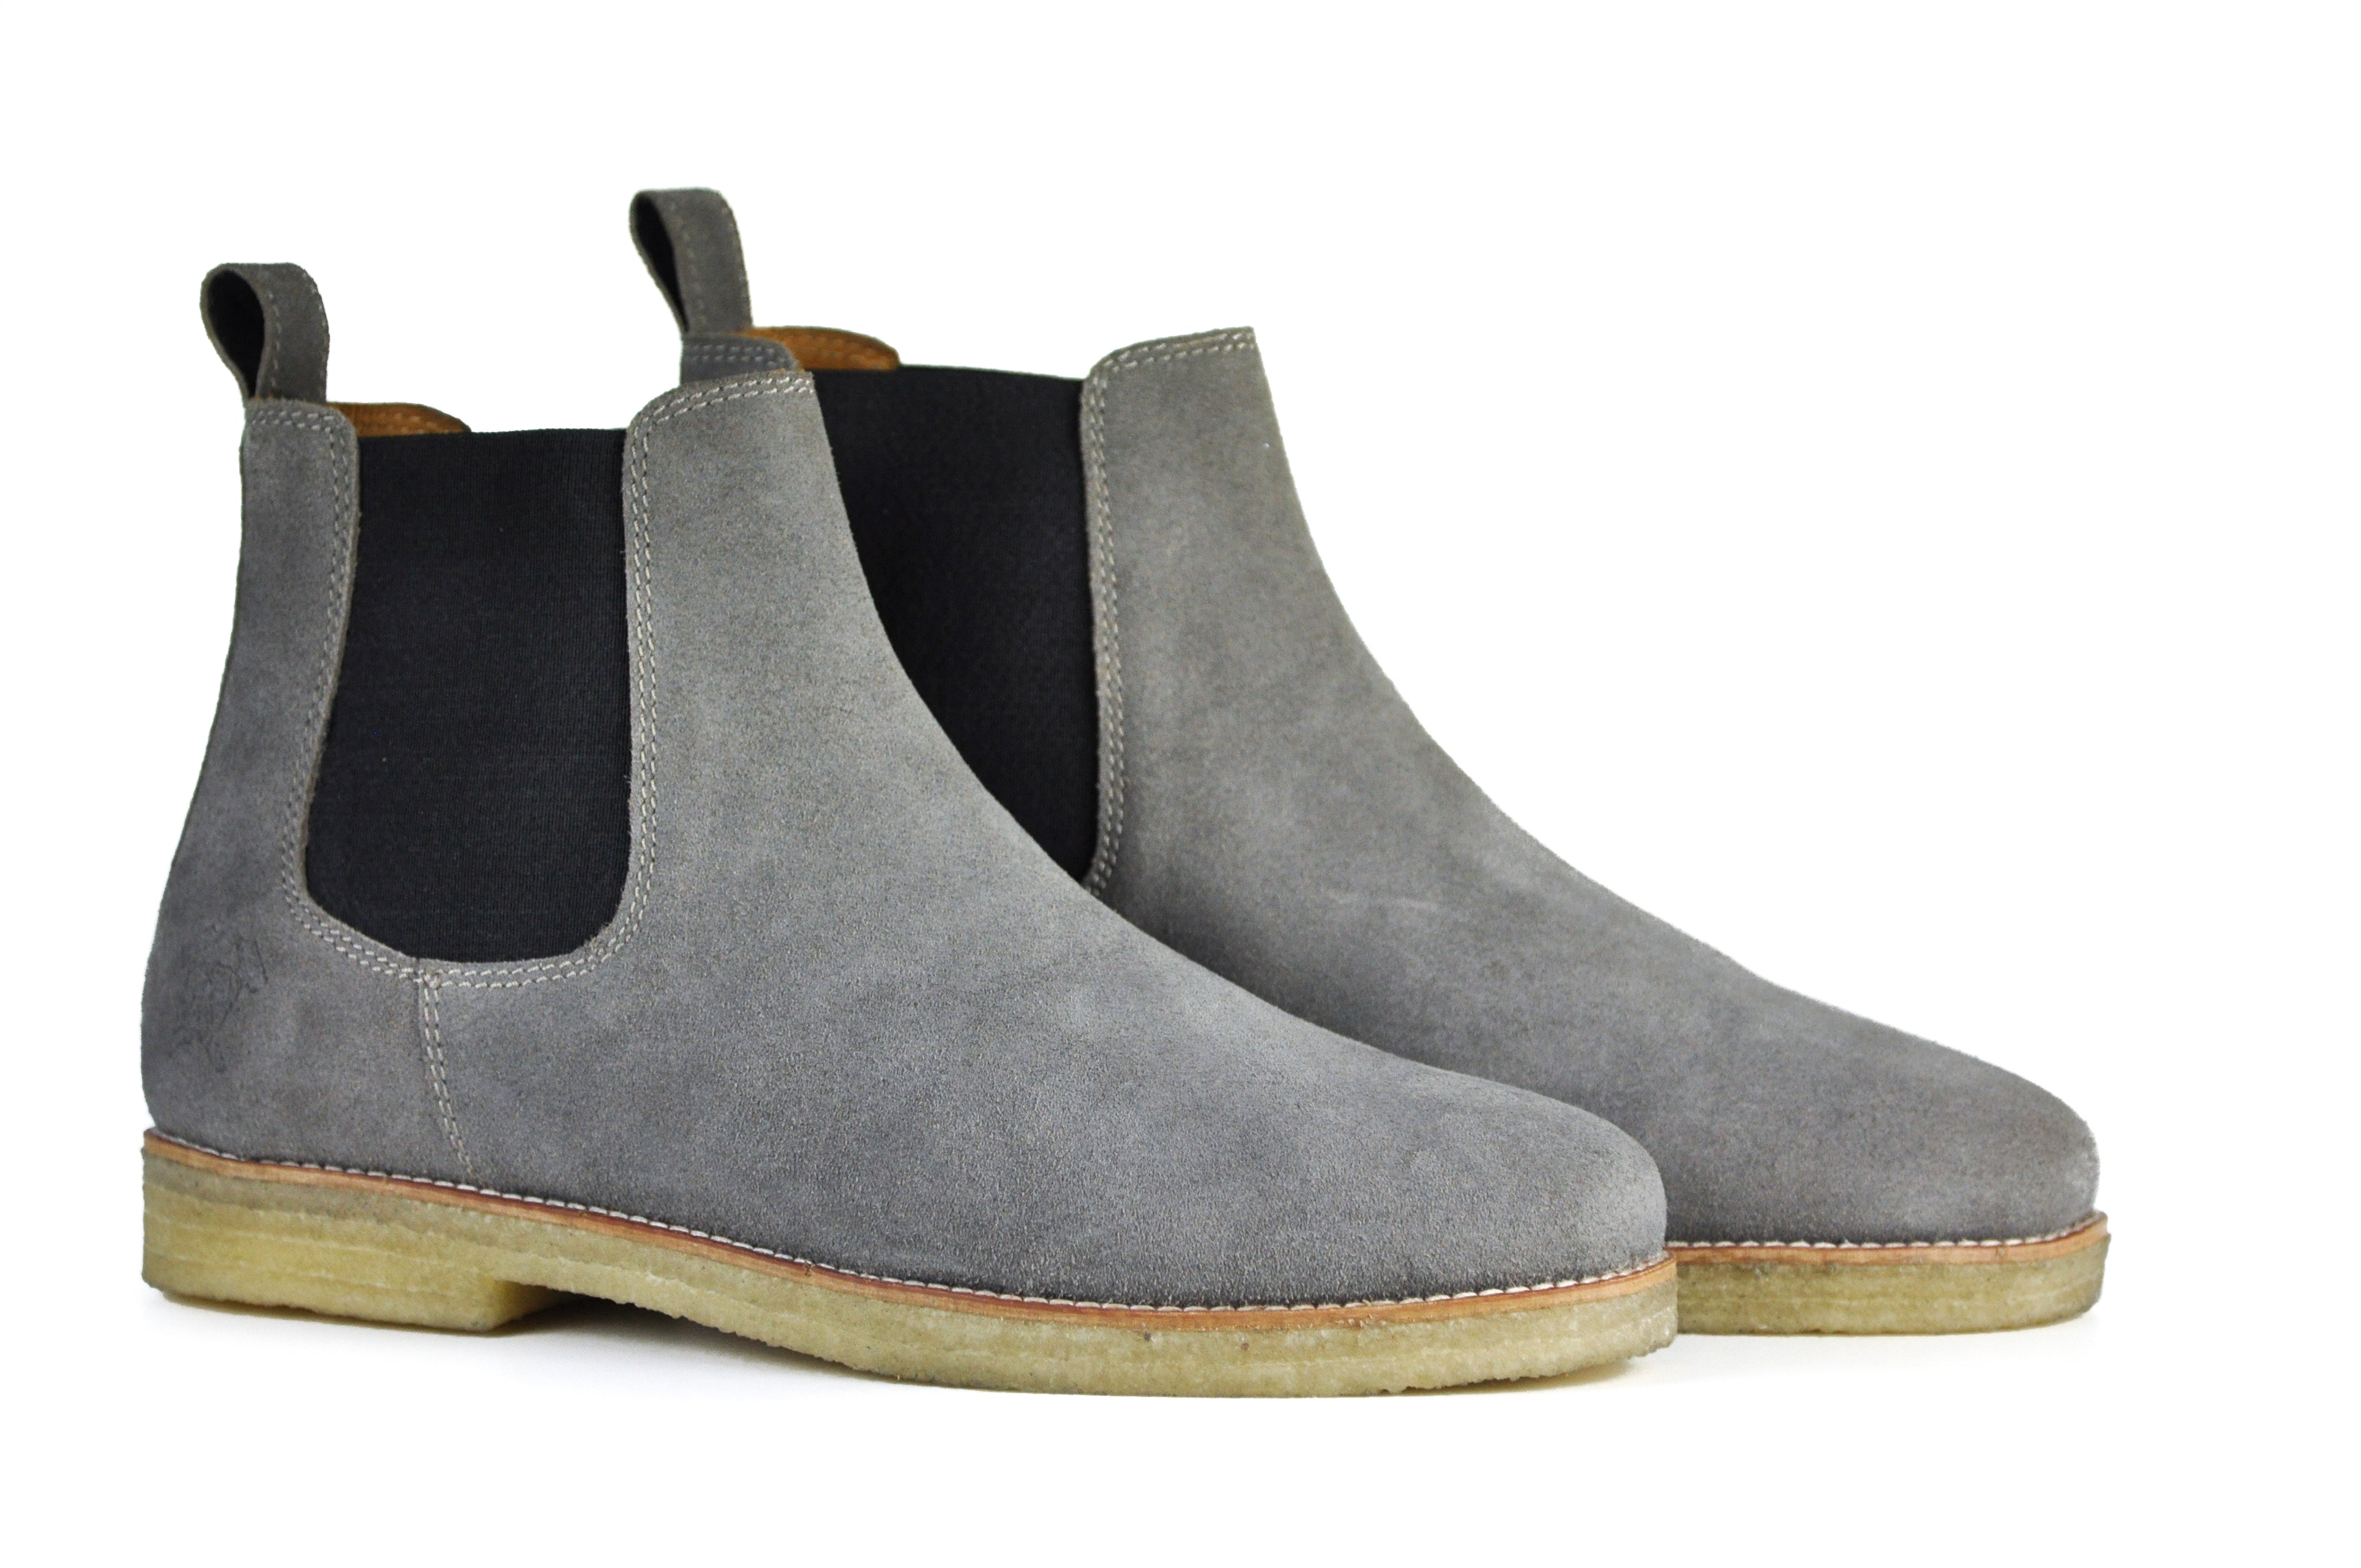 Chelsea Boot - The Maddox Mens Boot